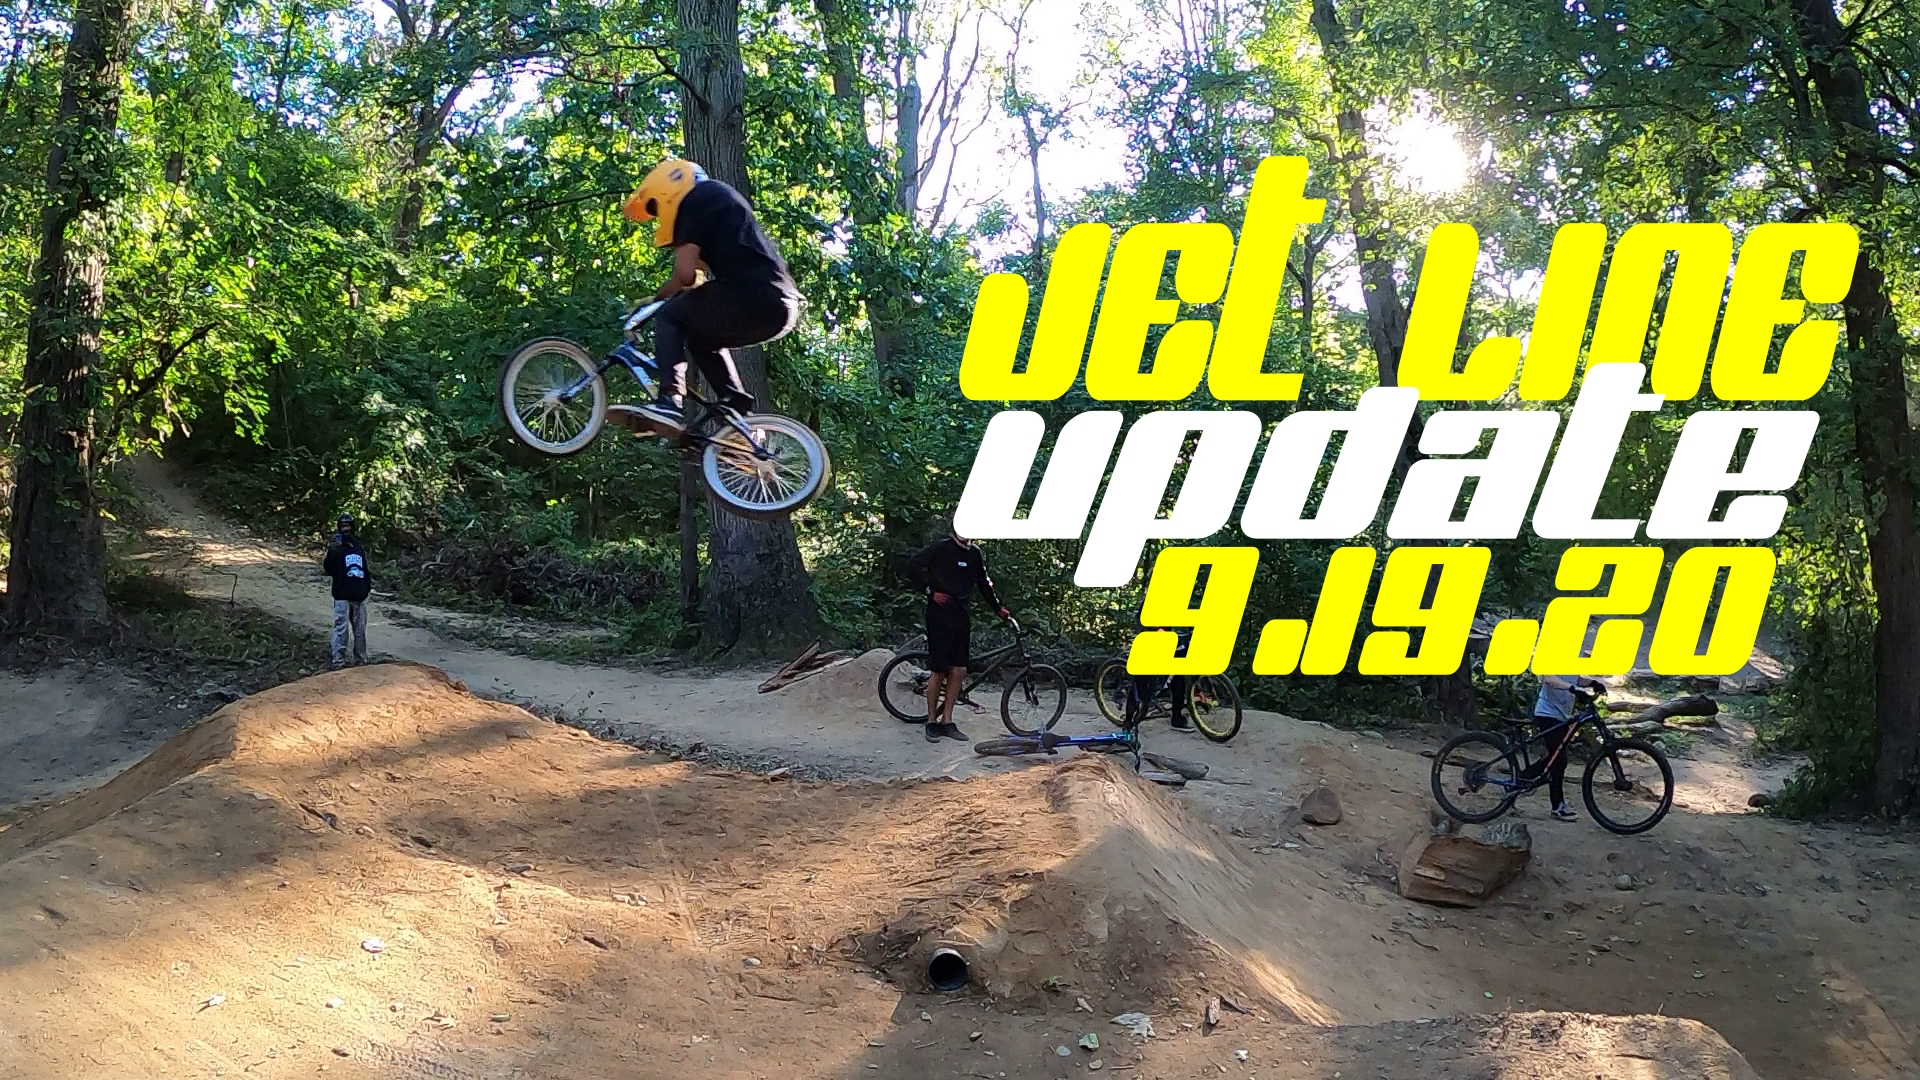 jetline dirt jumps 9.19.20 update